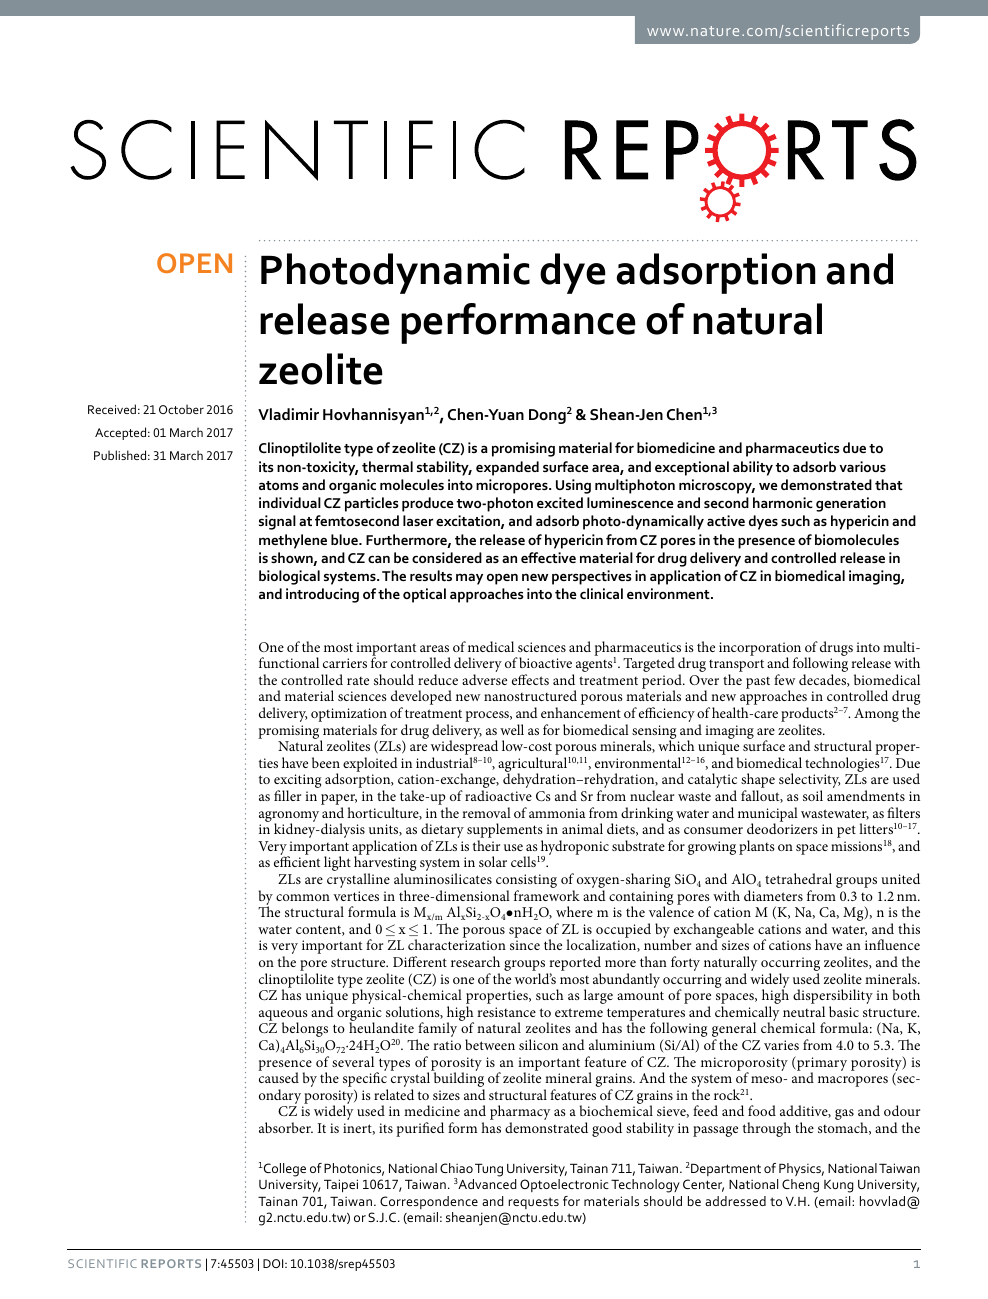 Photodynamic dye adsorption and release performance of